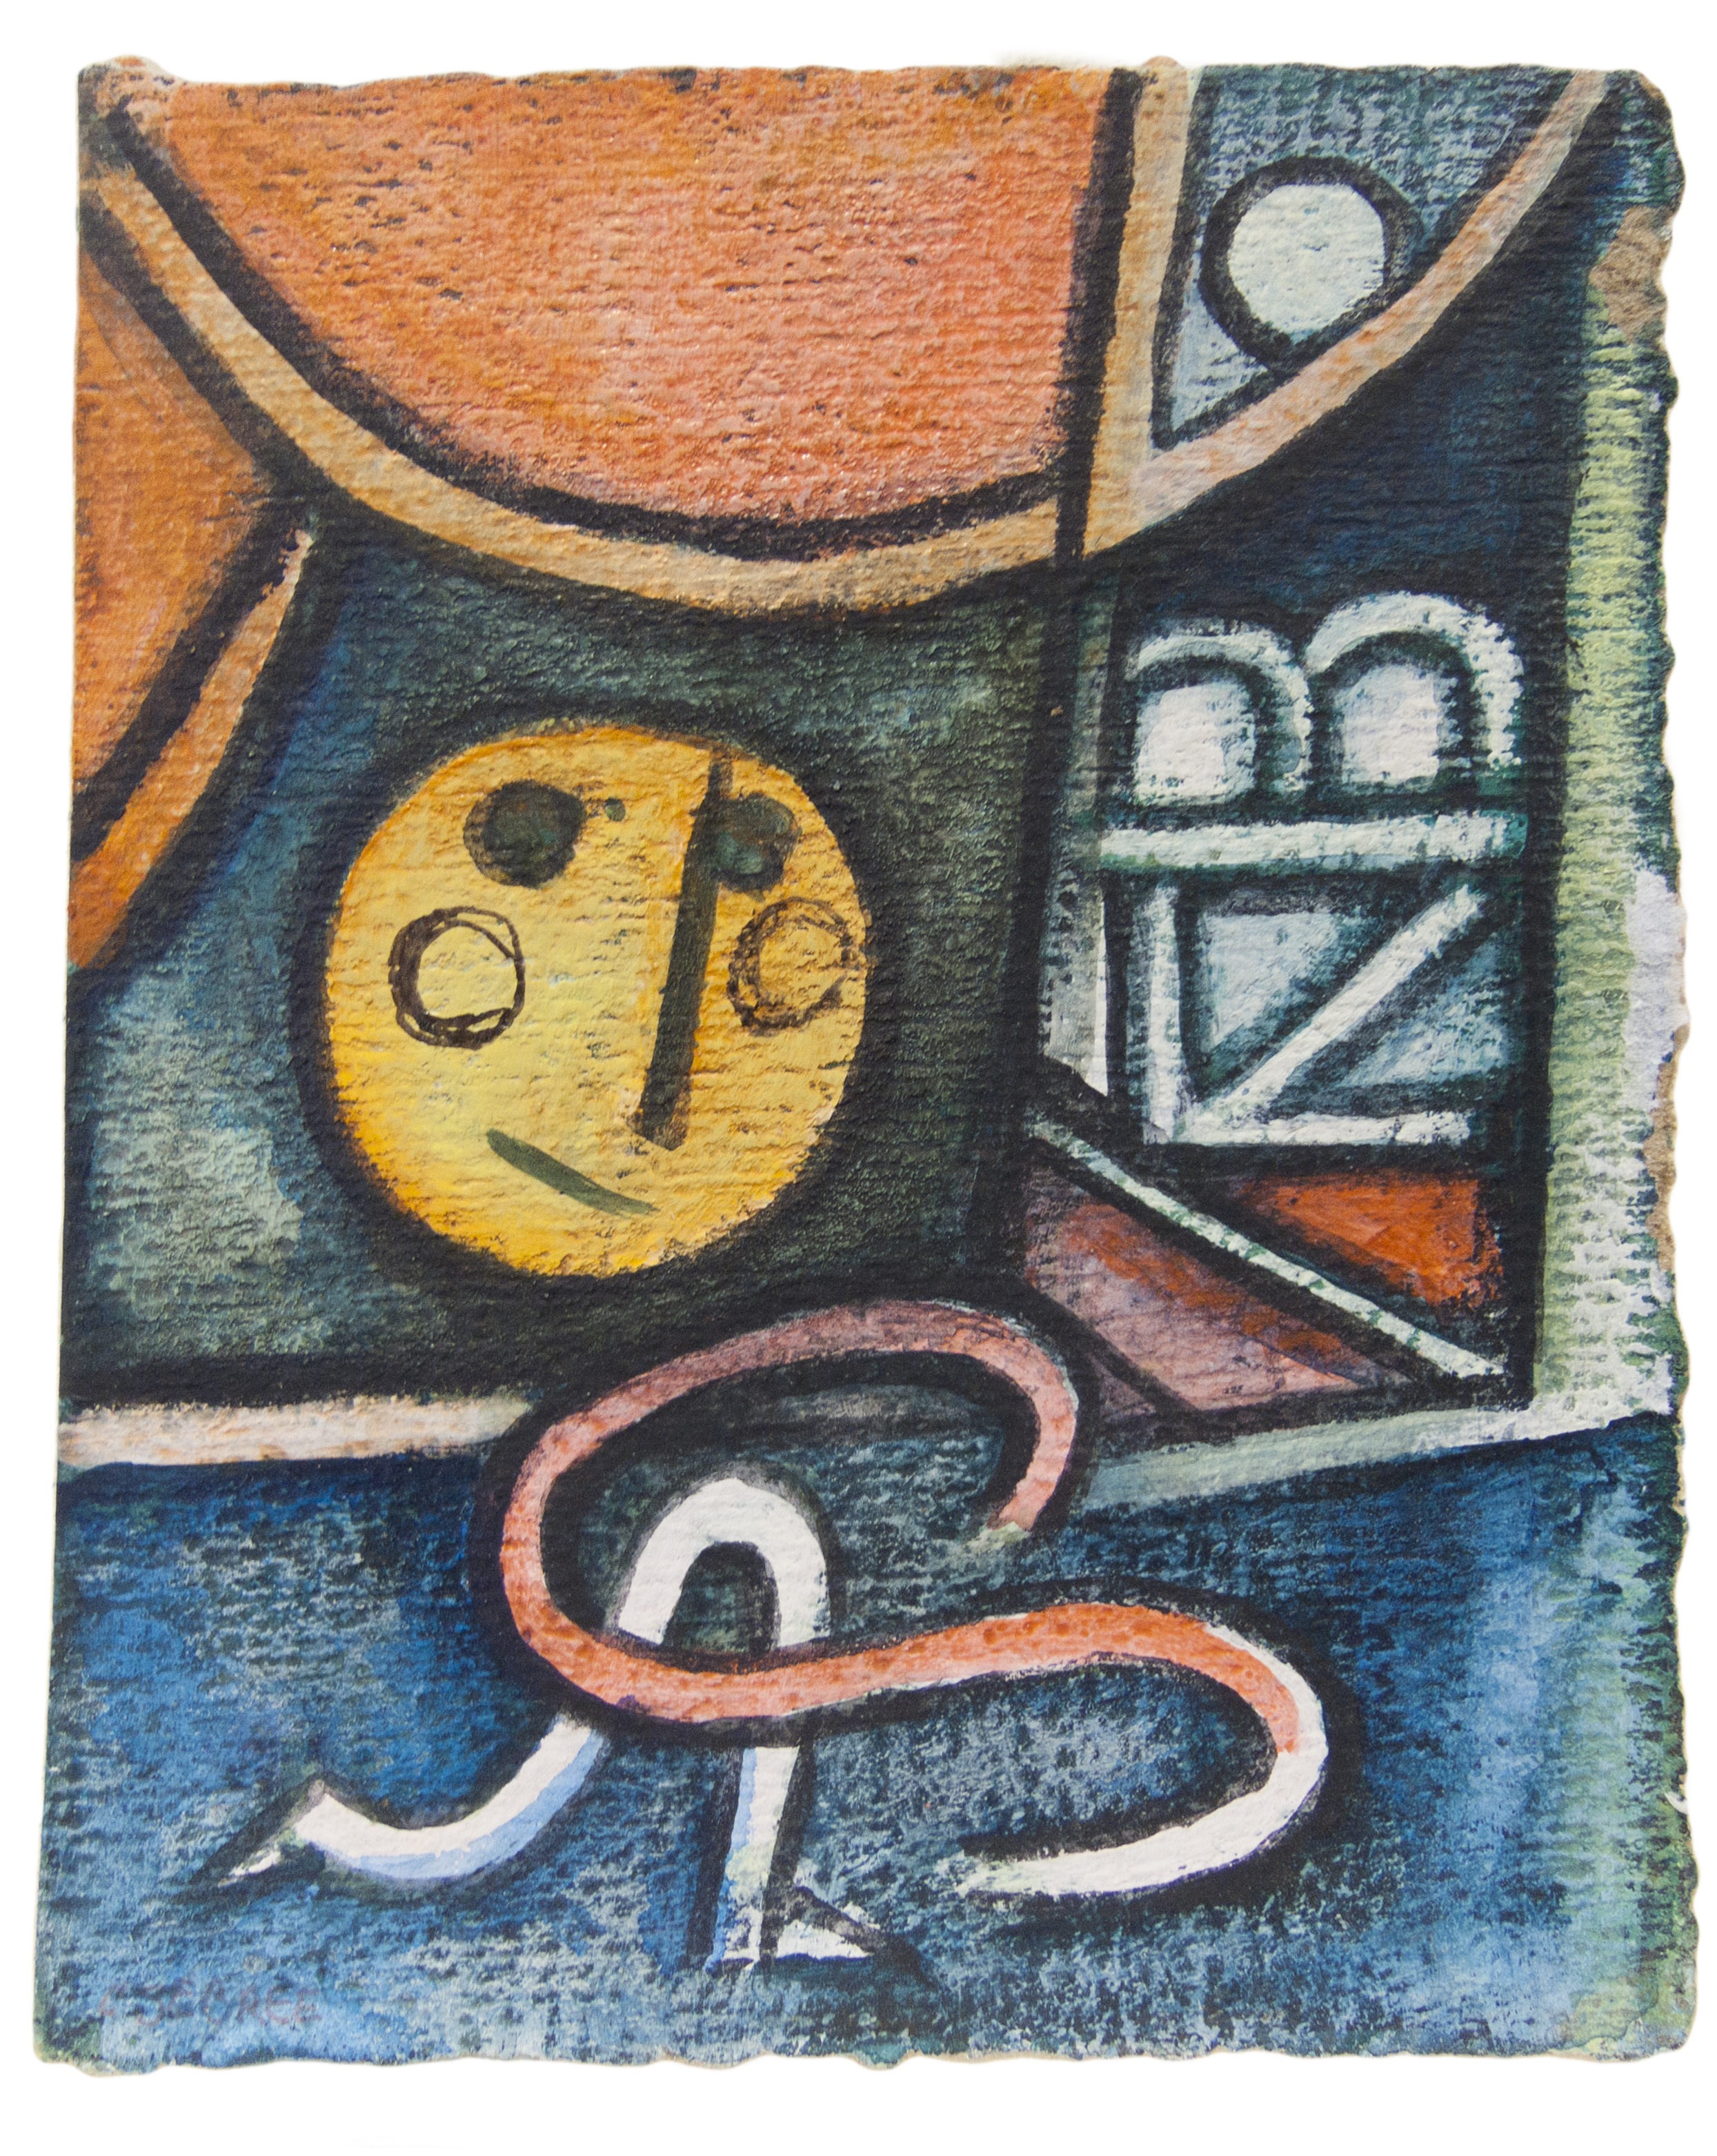 Untitled (Figure in a Geometric Composition)